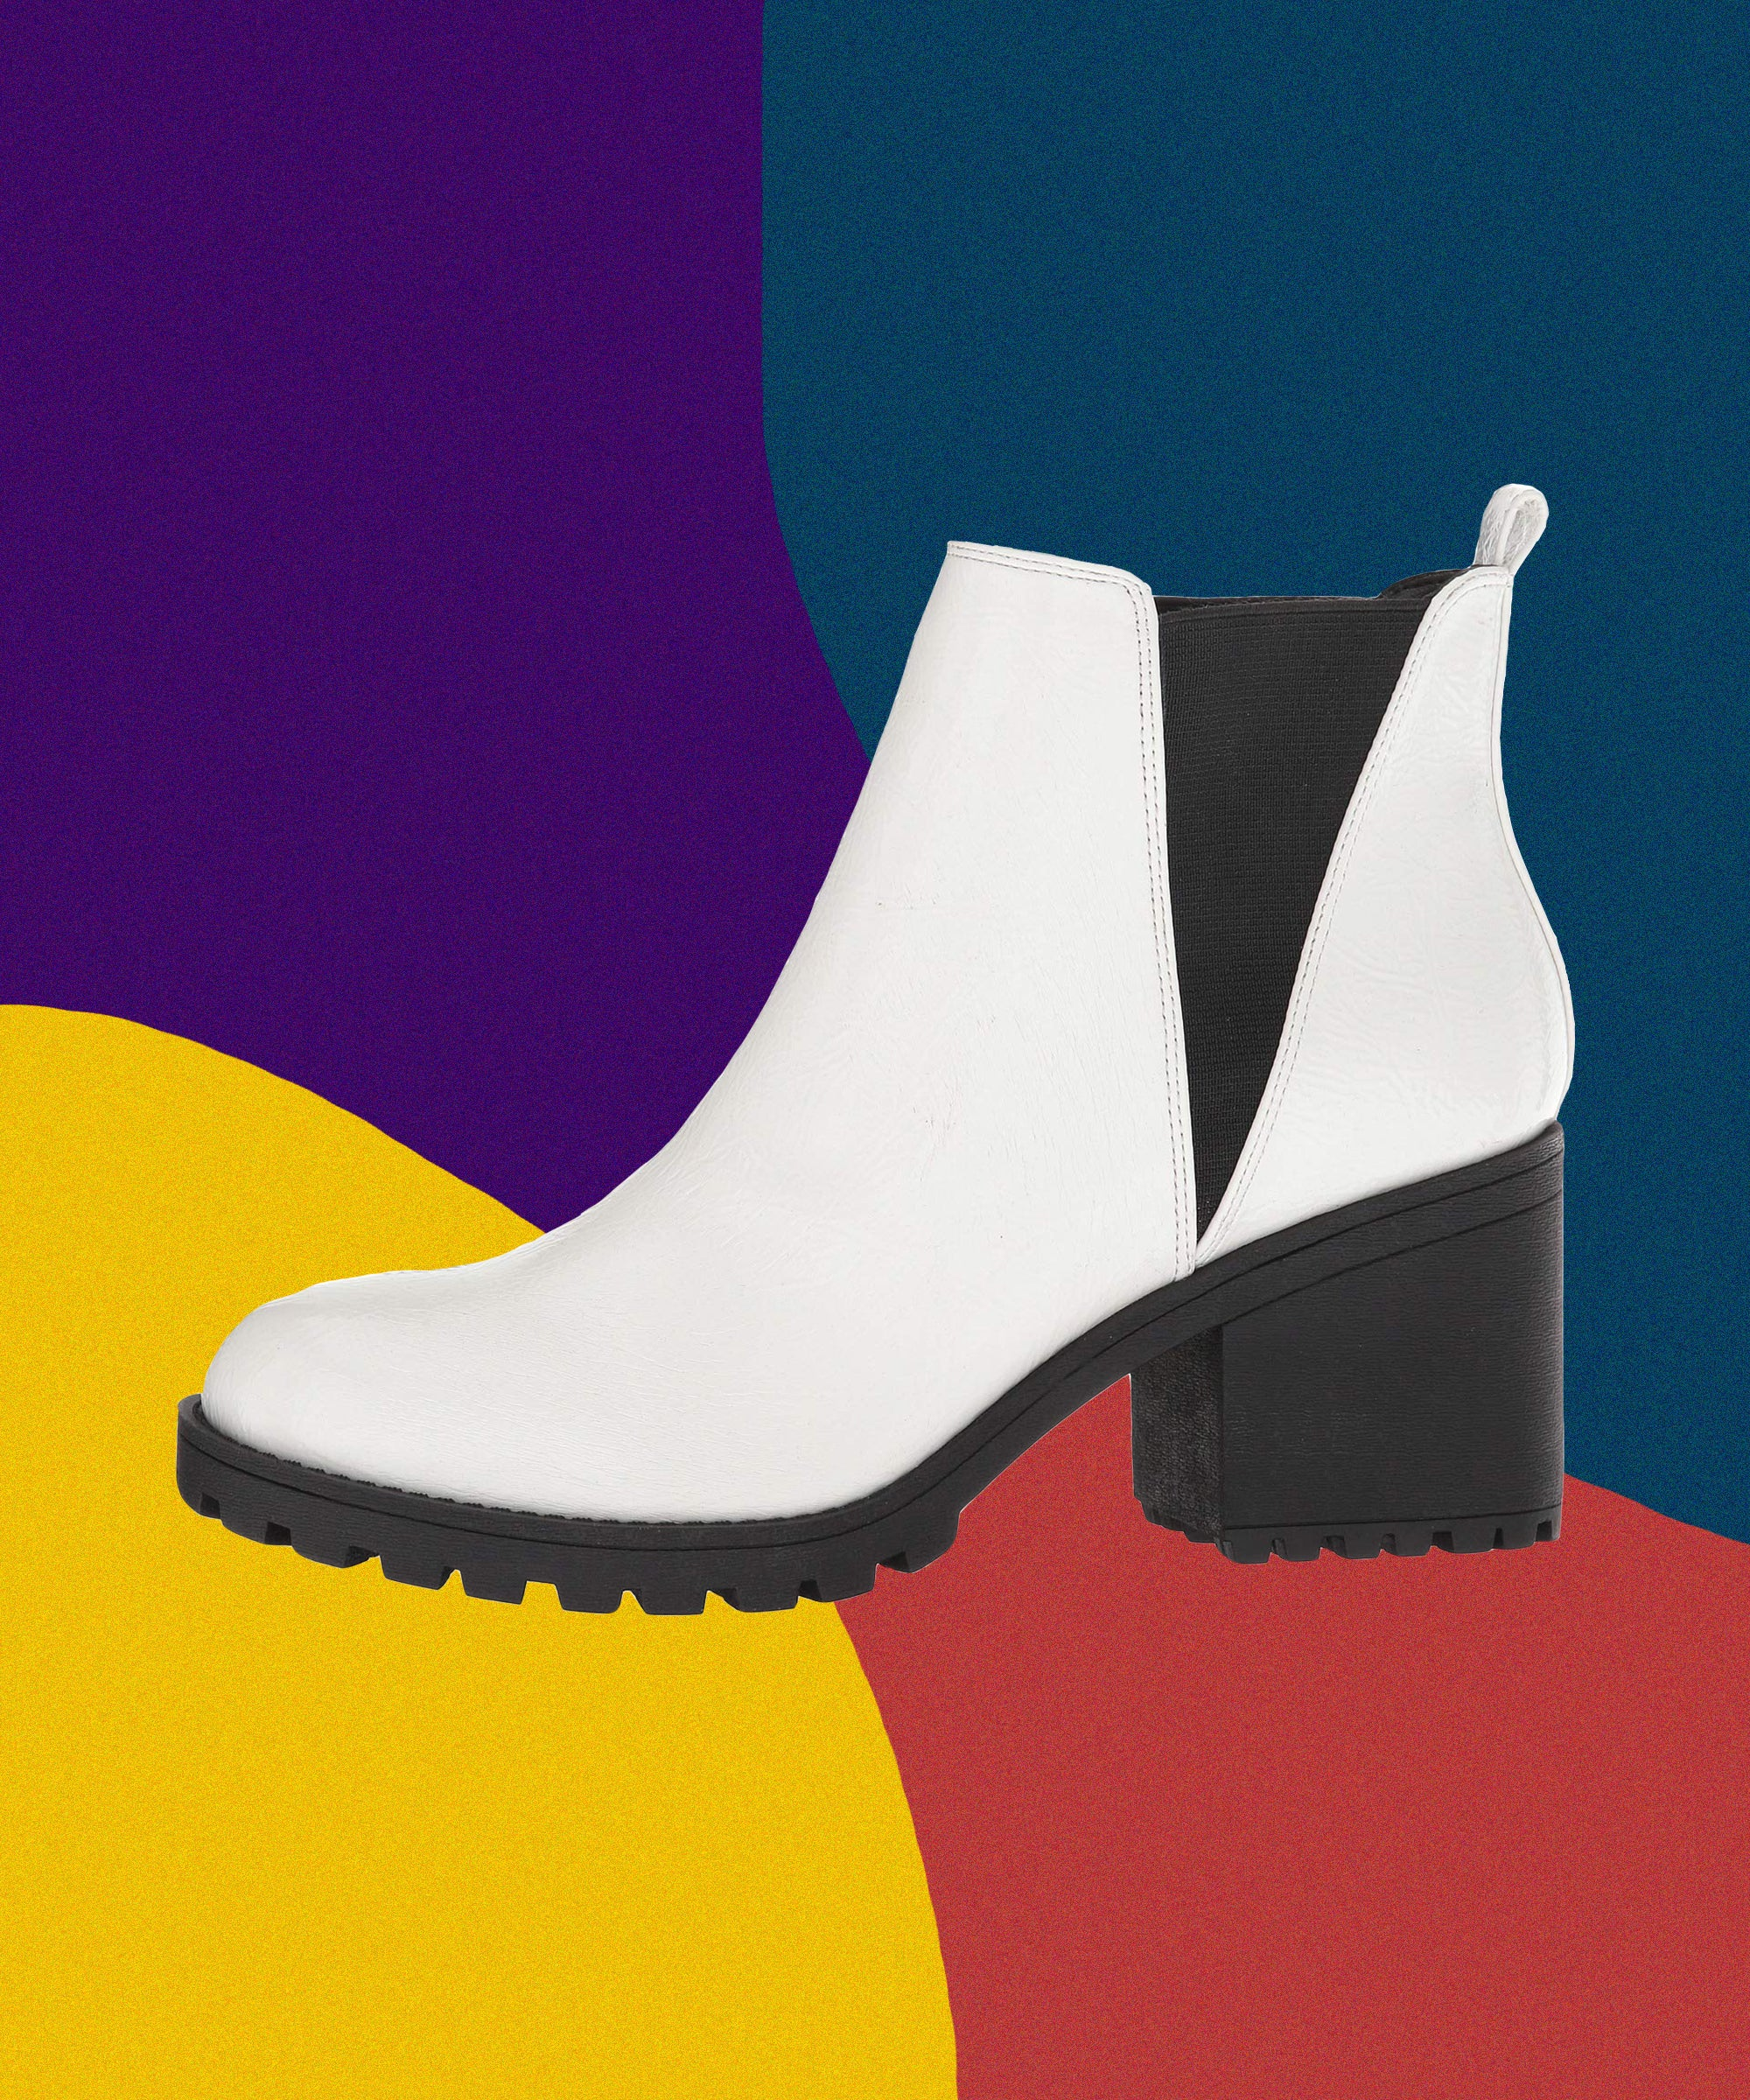 Most Comfortable Boots For Women On